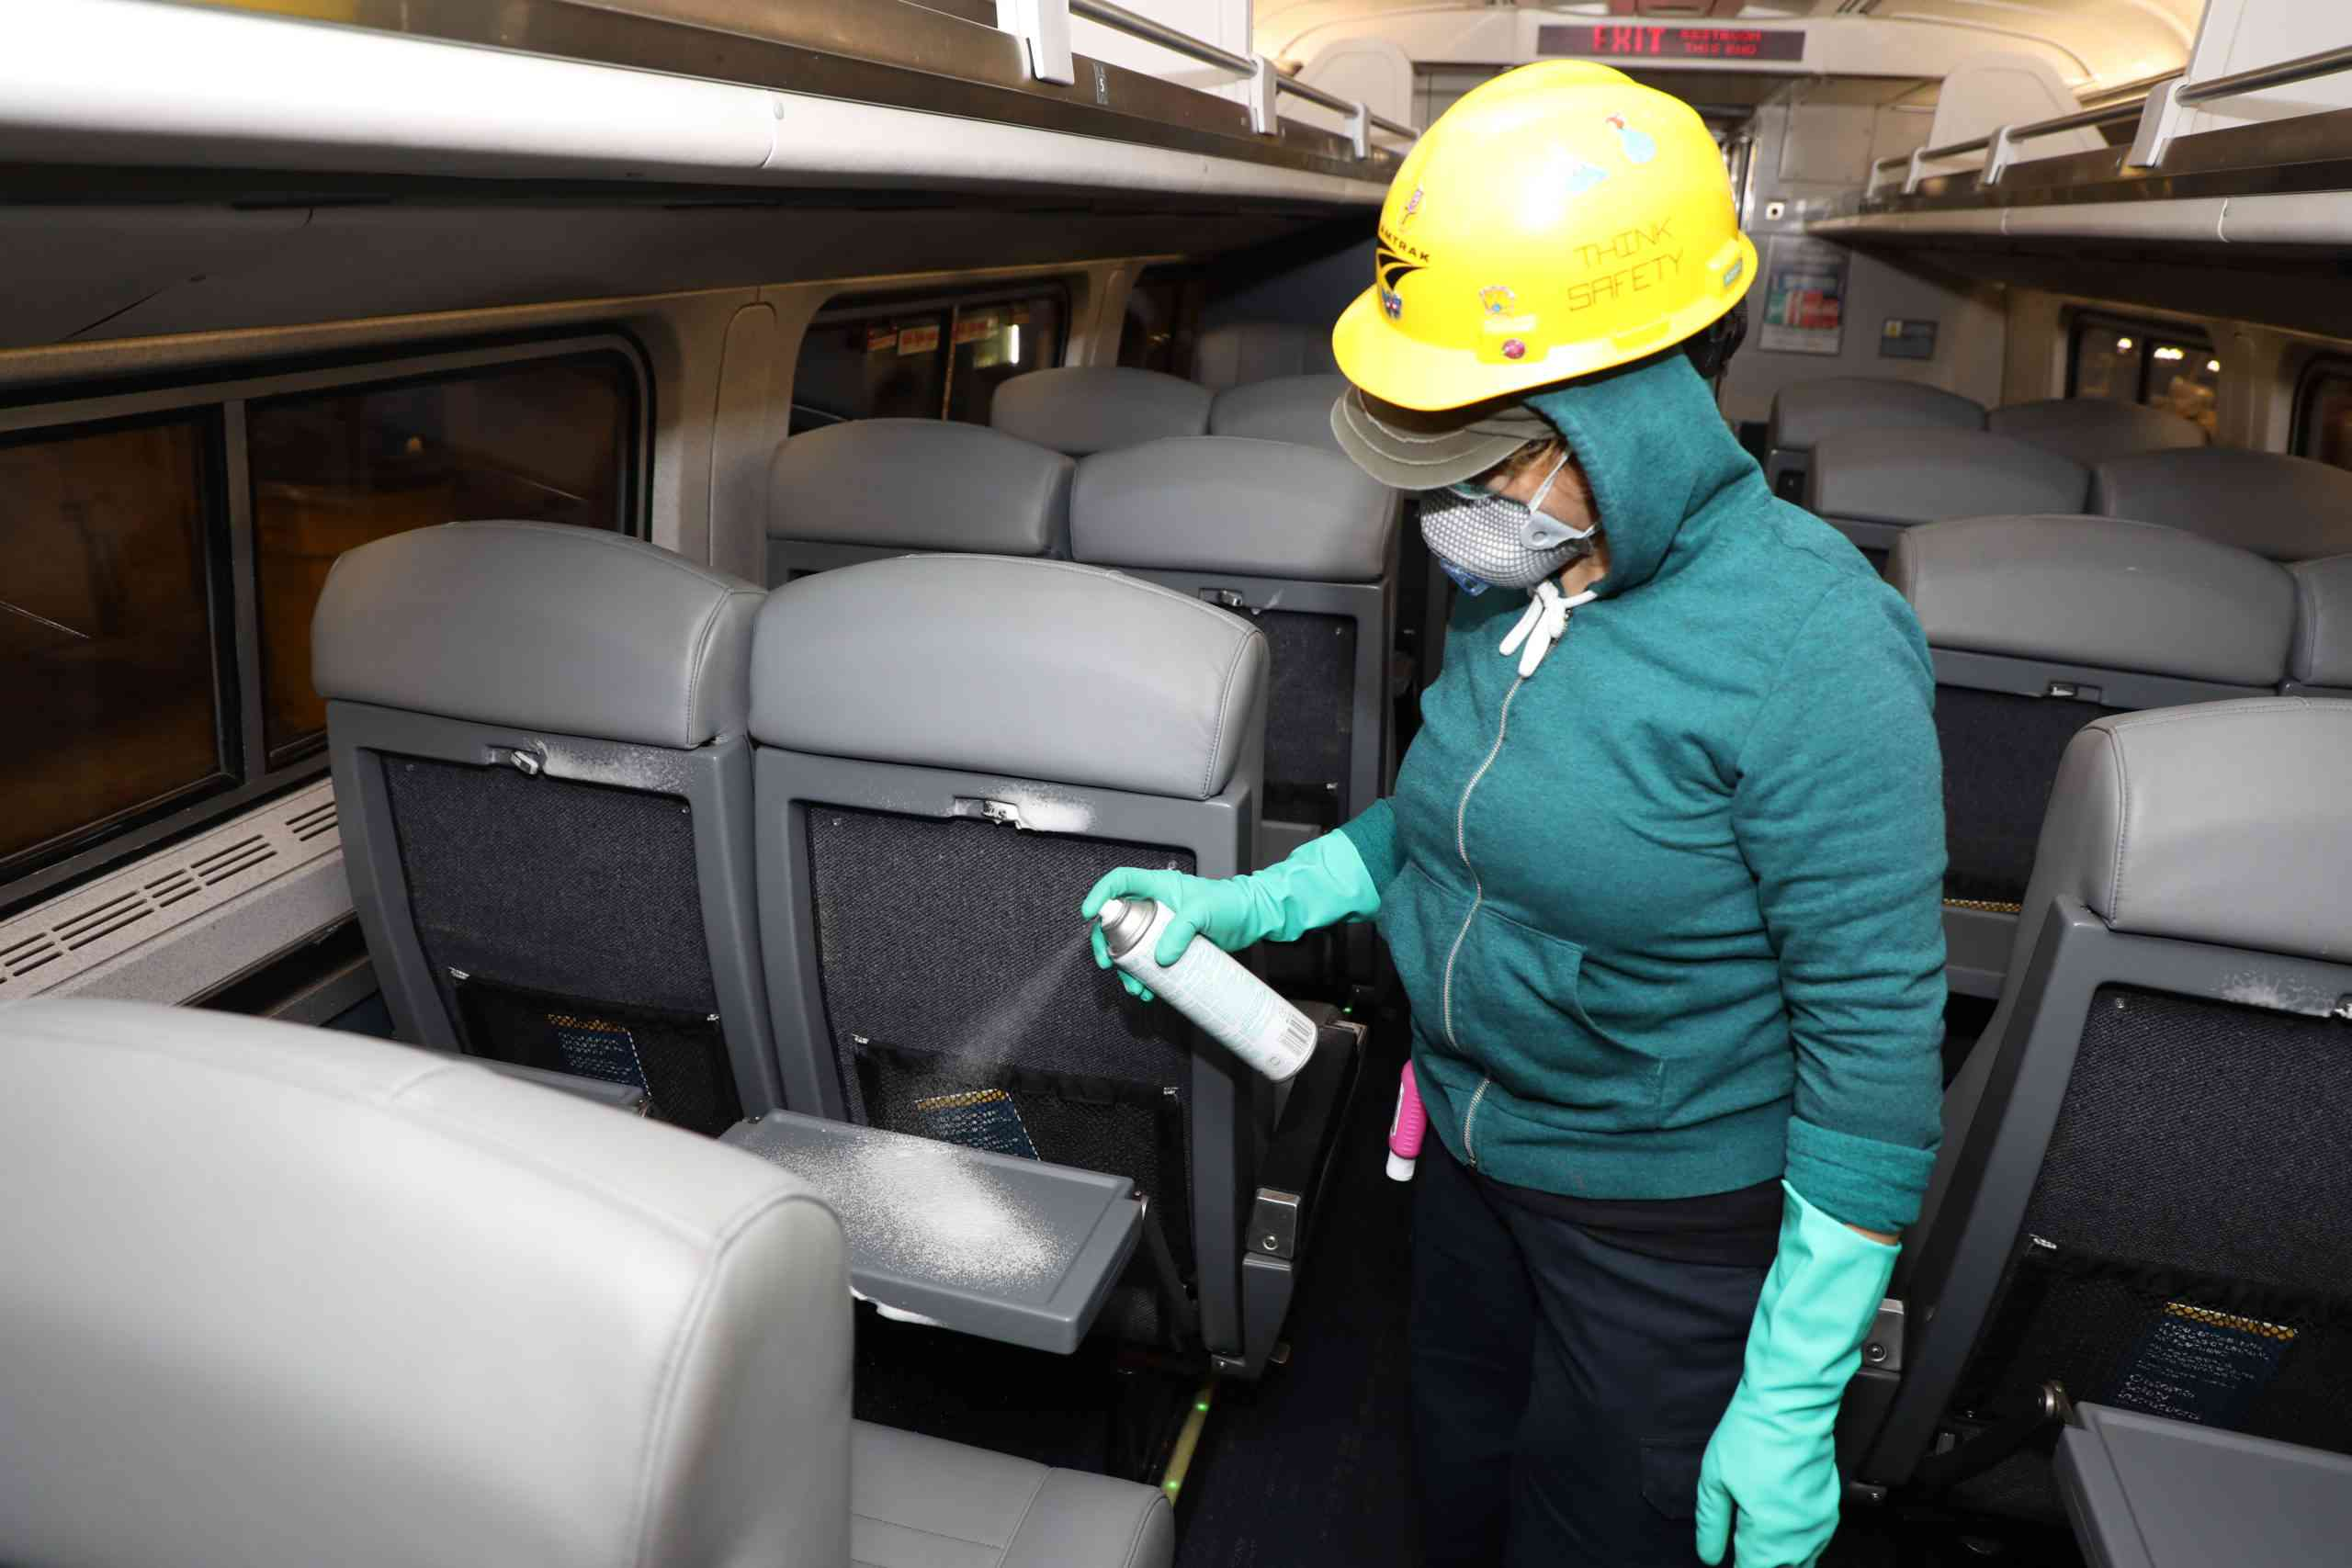 An employee spraying disinfectant on an Amtrak seat